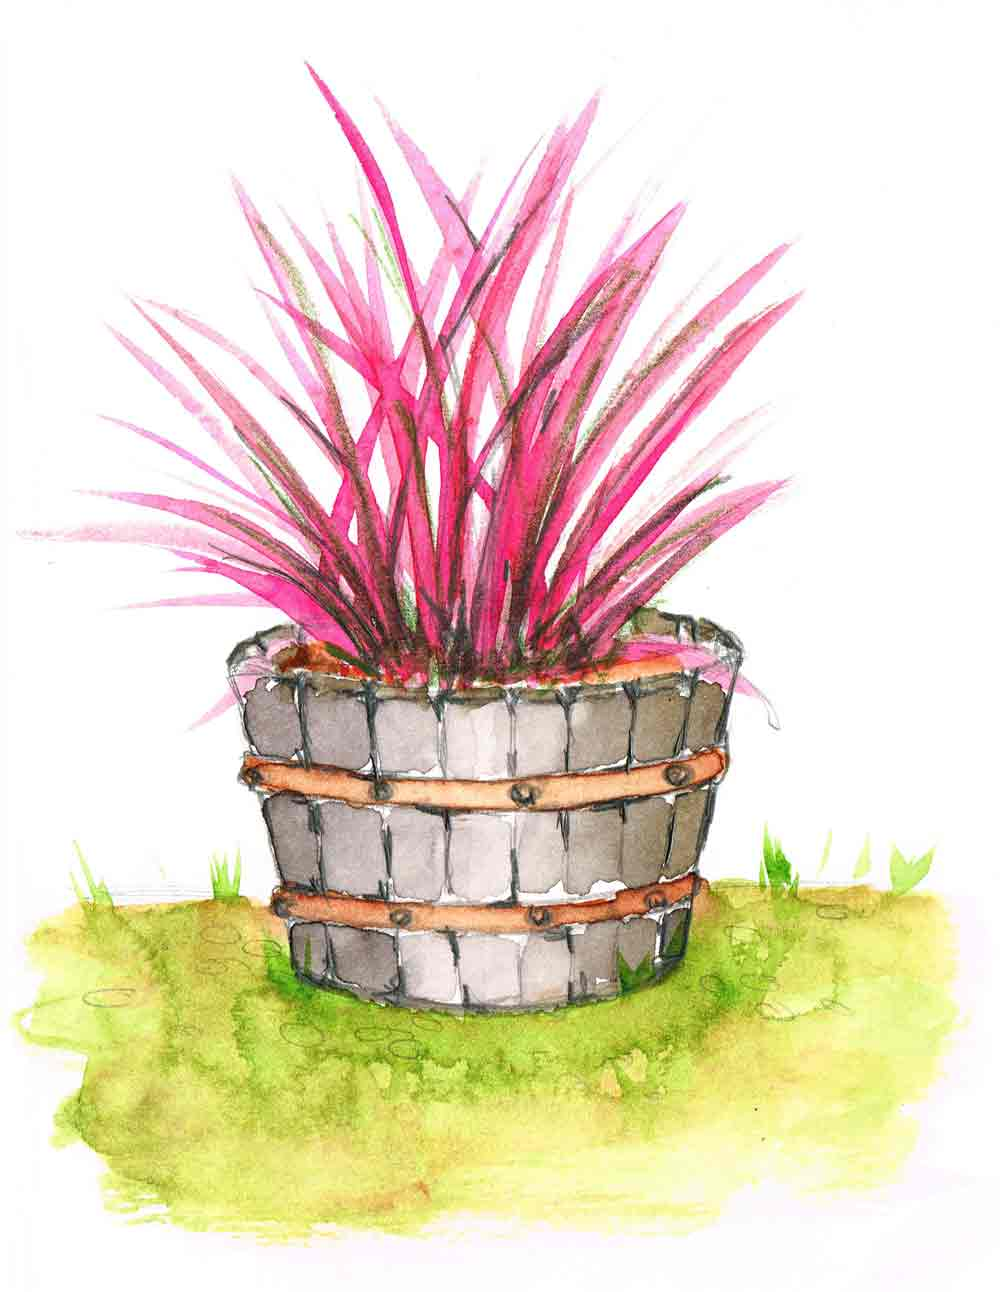 Electric-Pink-Plant-in-pots-no-2-kw.jpg